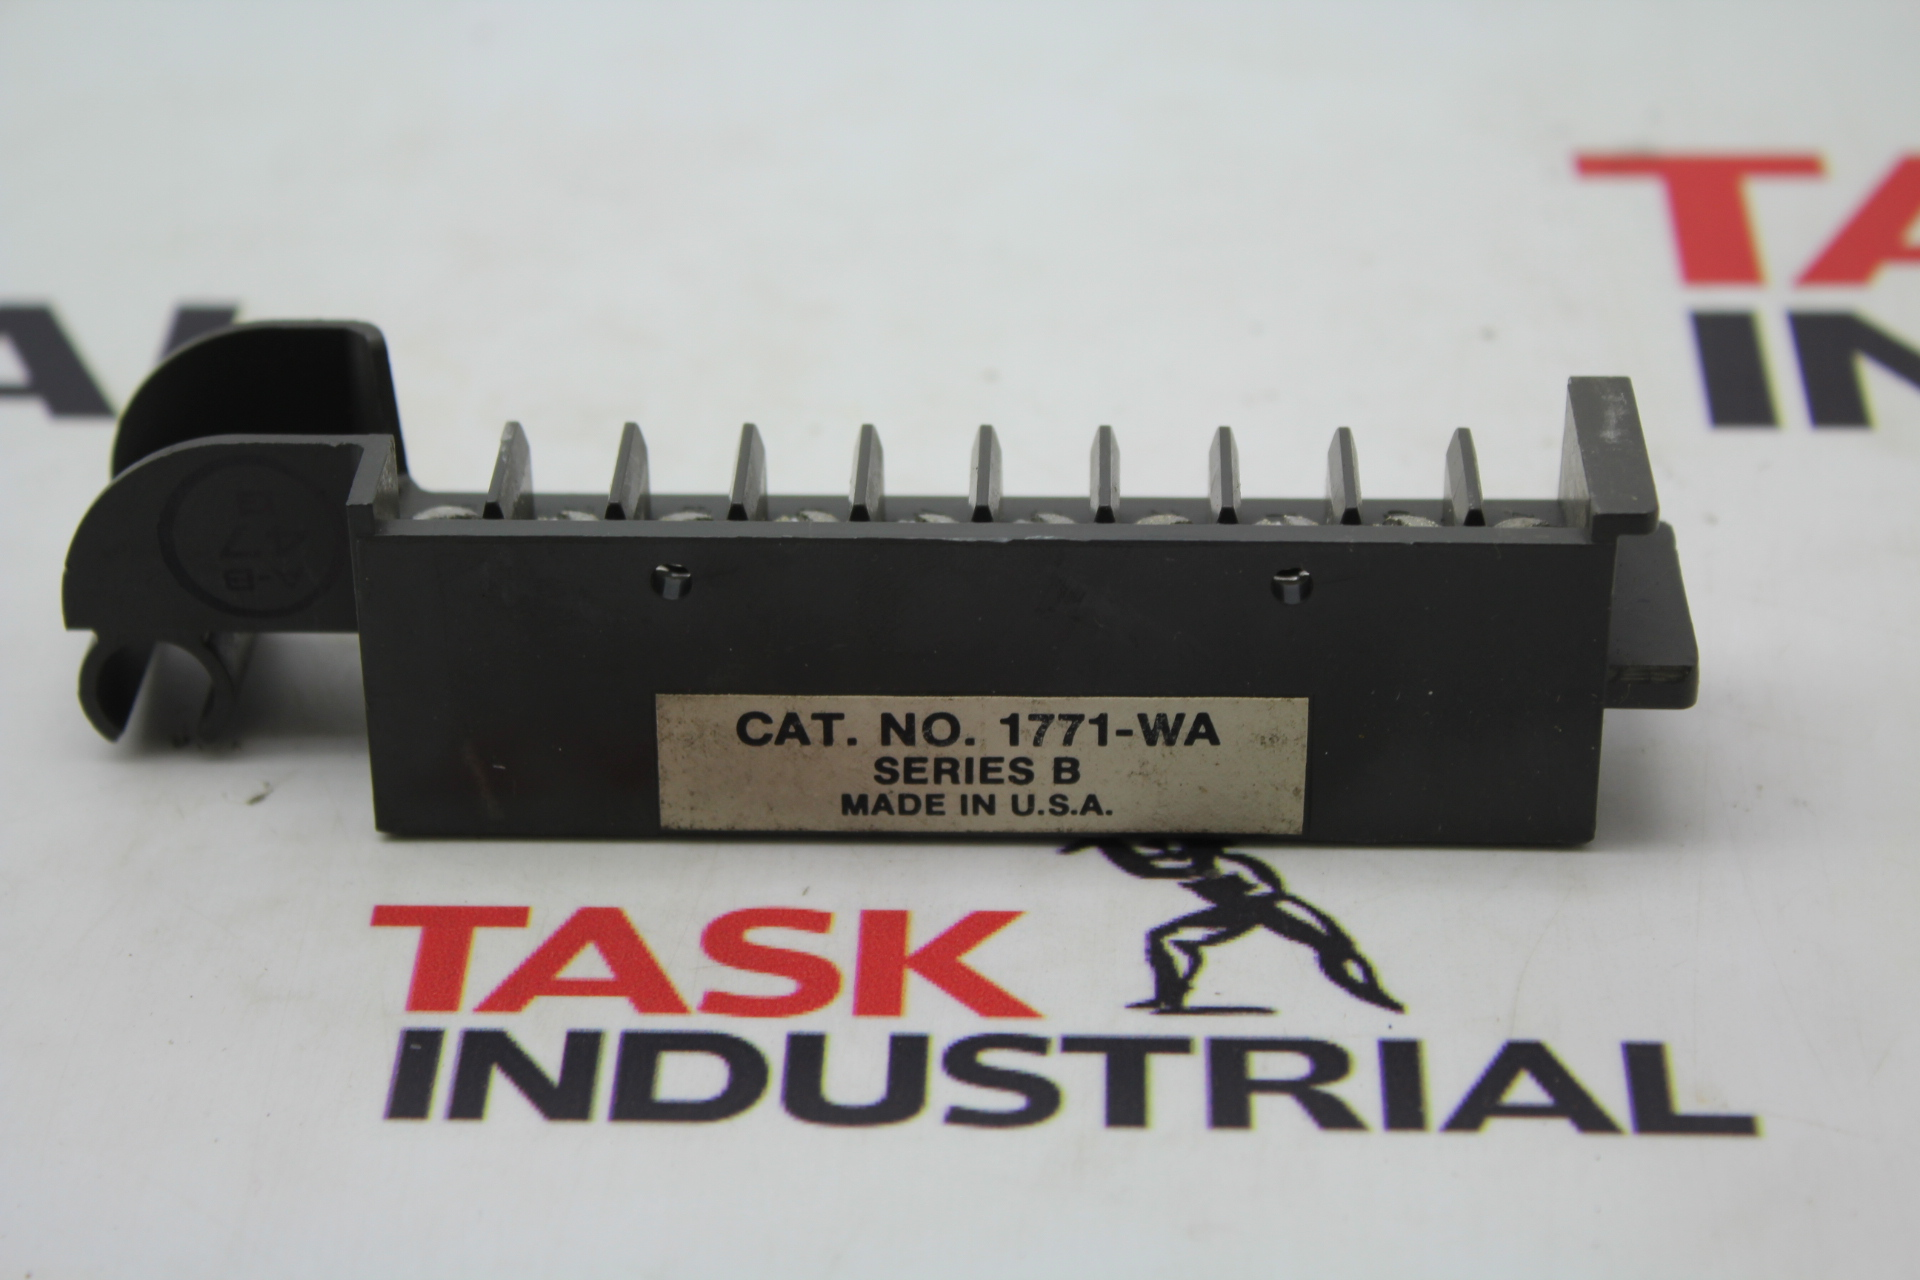 Allen-Bradley CAT NO. 1771-WA Swing Arm Terminal